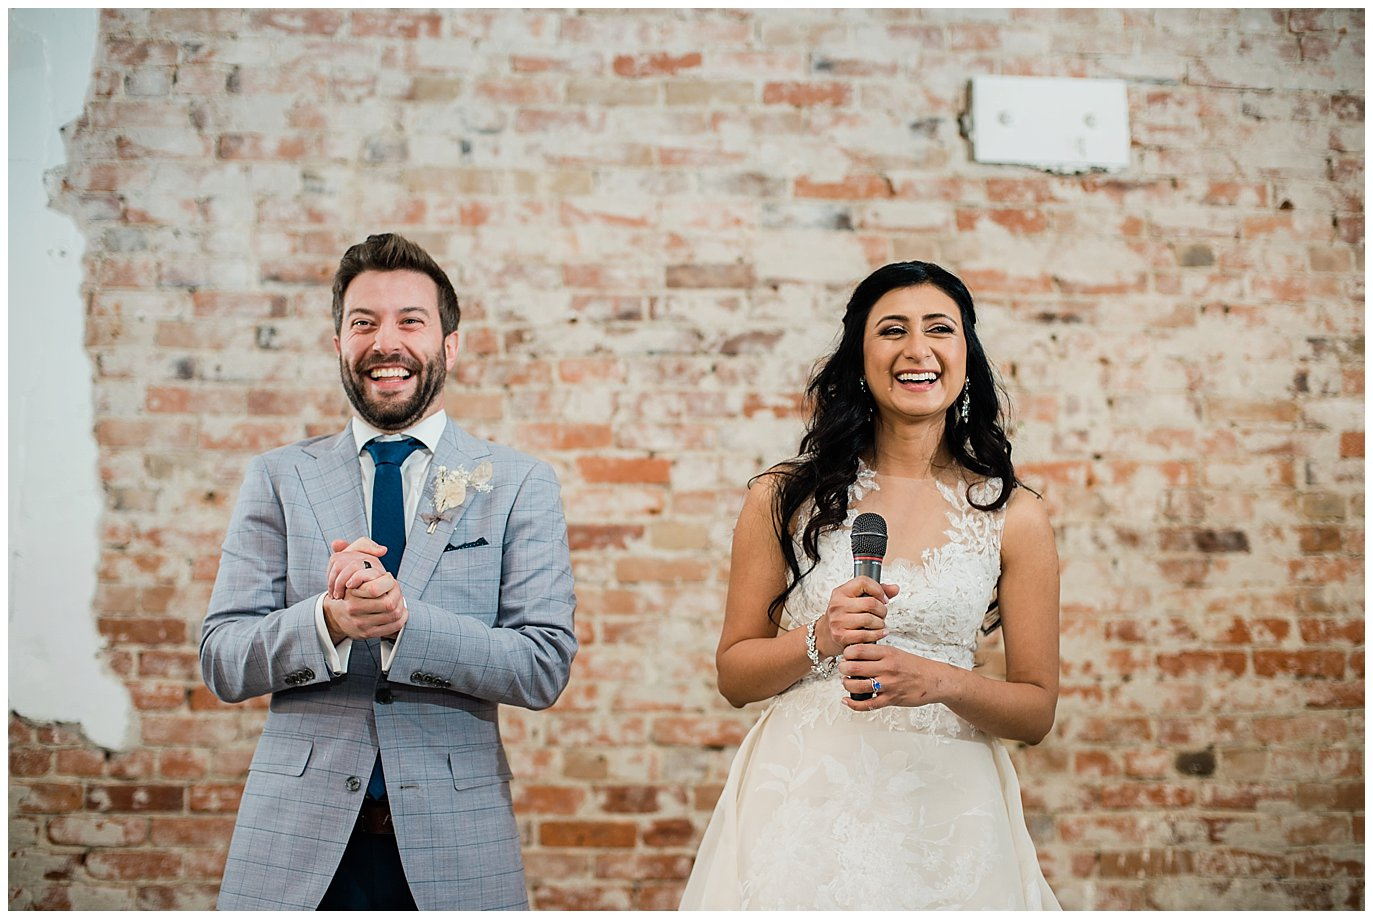 bride and groom speech at Blanc Wedding venue by Denver Wedding Photographer Jennie Crate